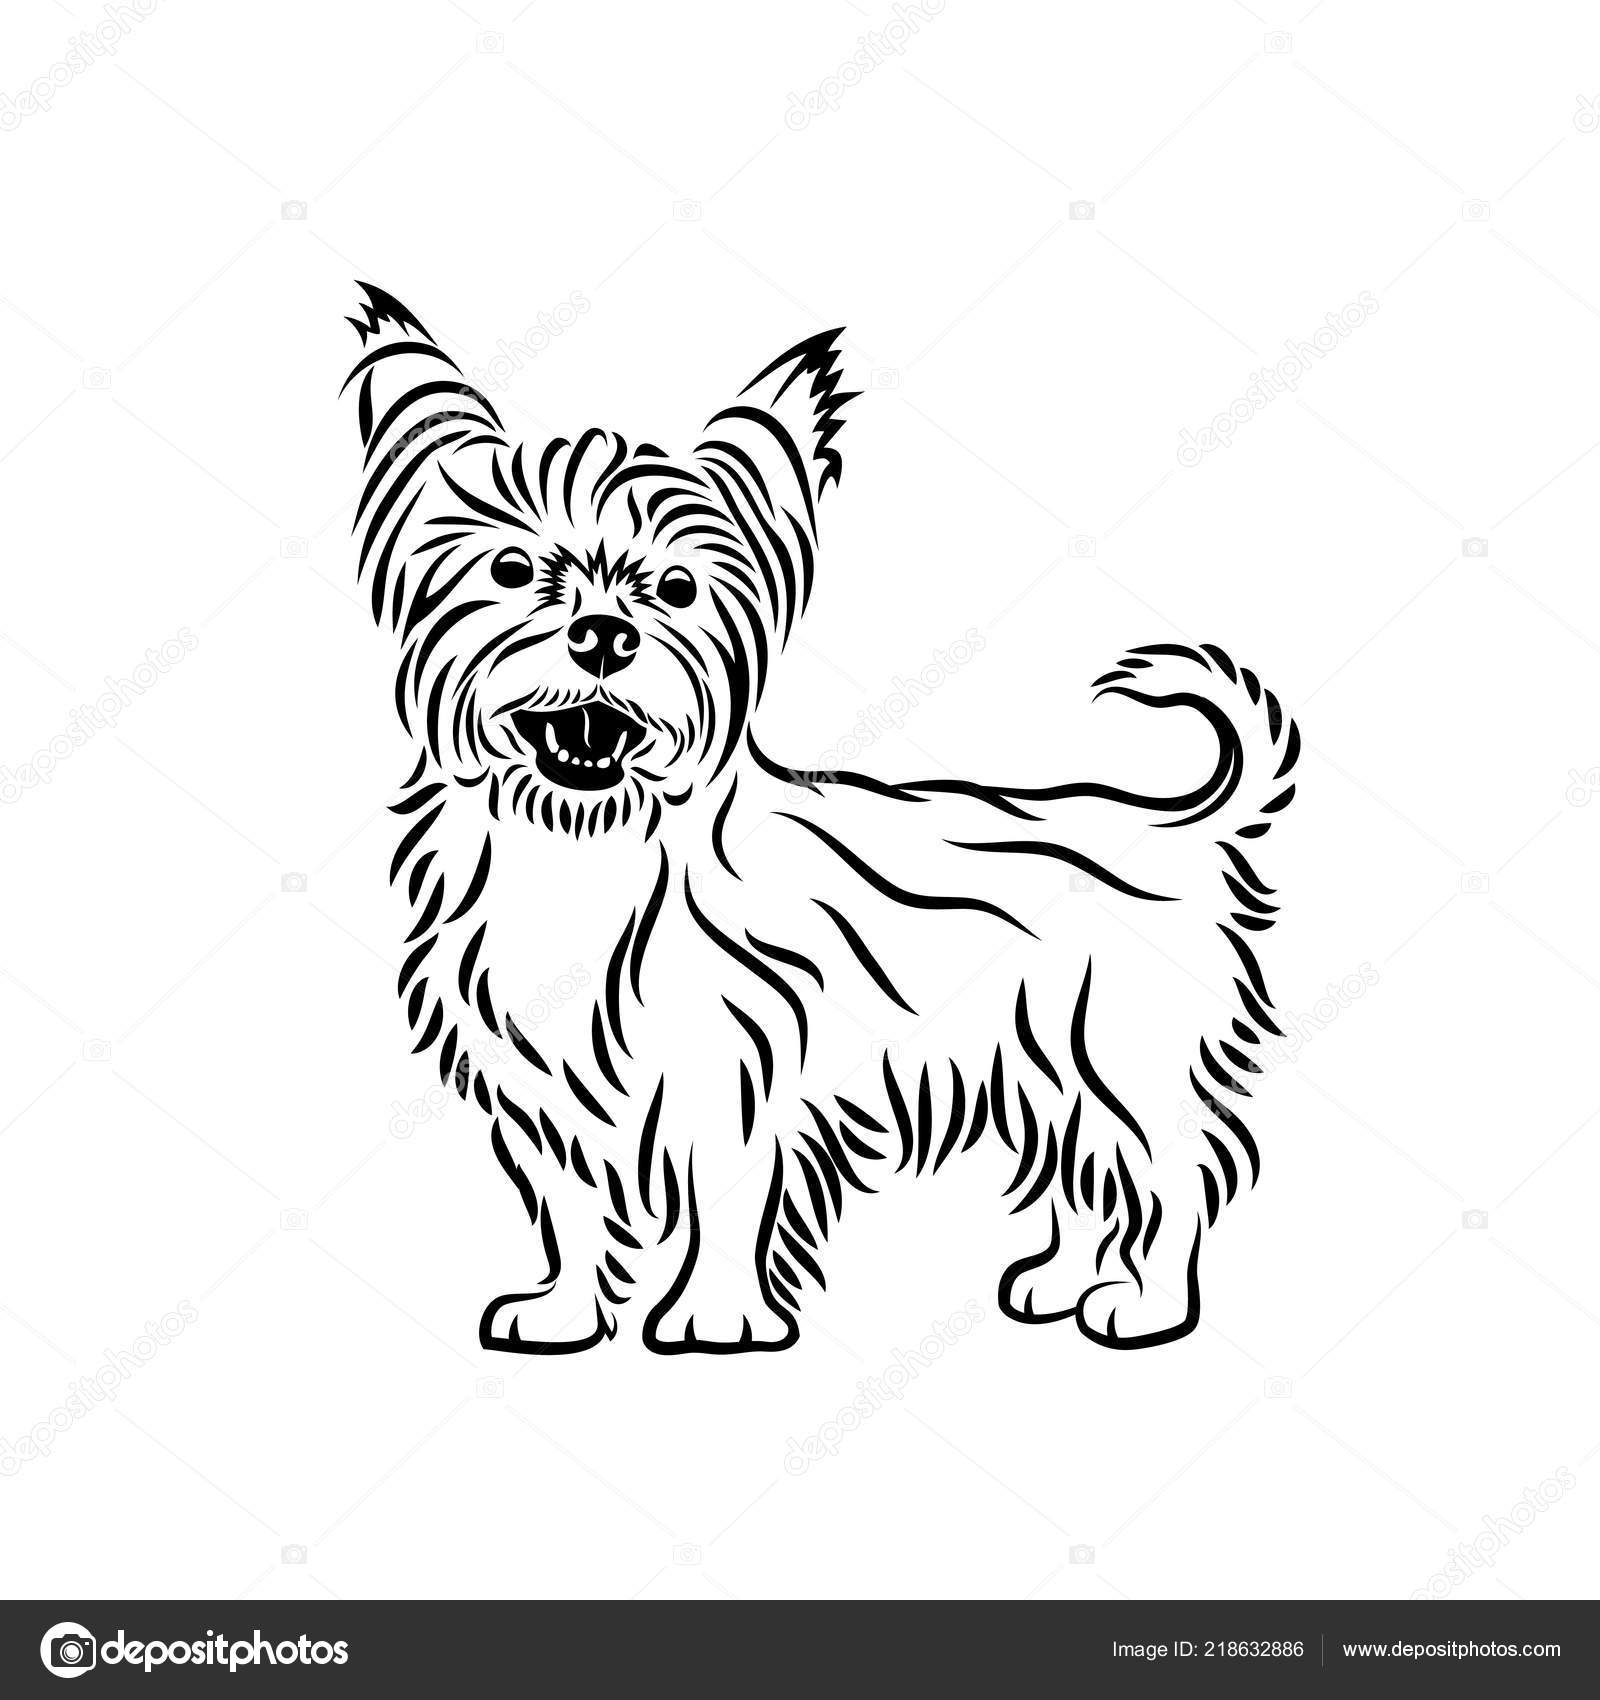 ᐈ Yorkie Silhouette Royalty Free Chorkie Images Download On Depositphotos